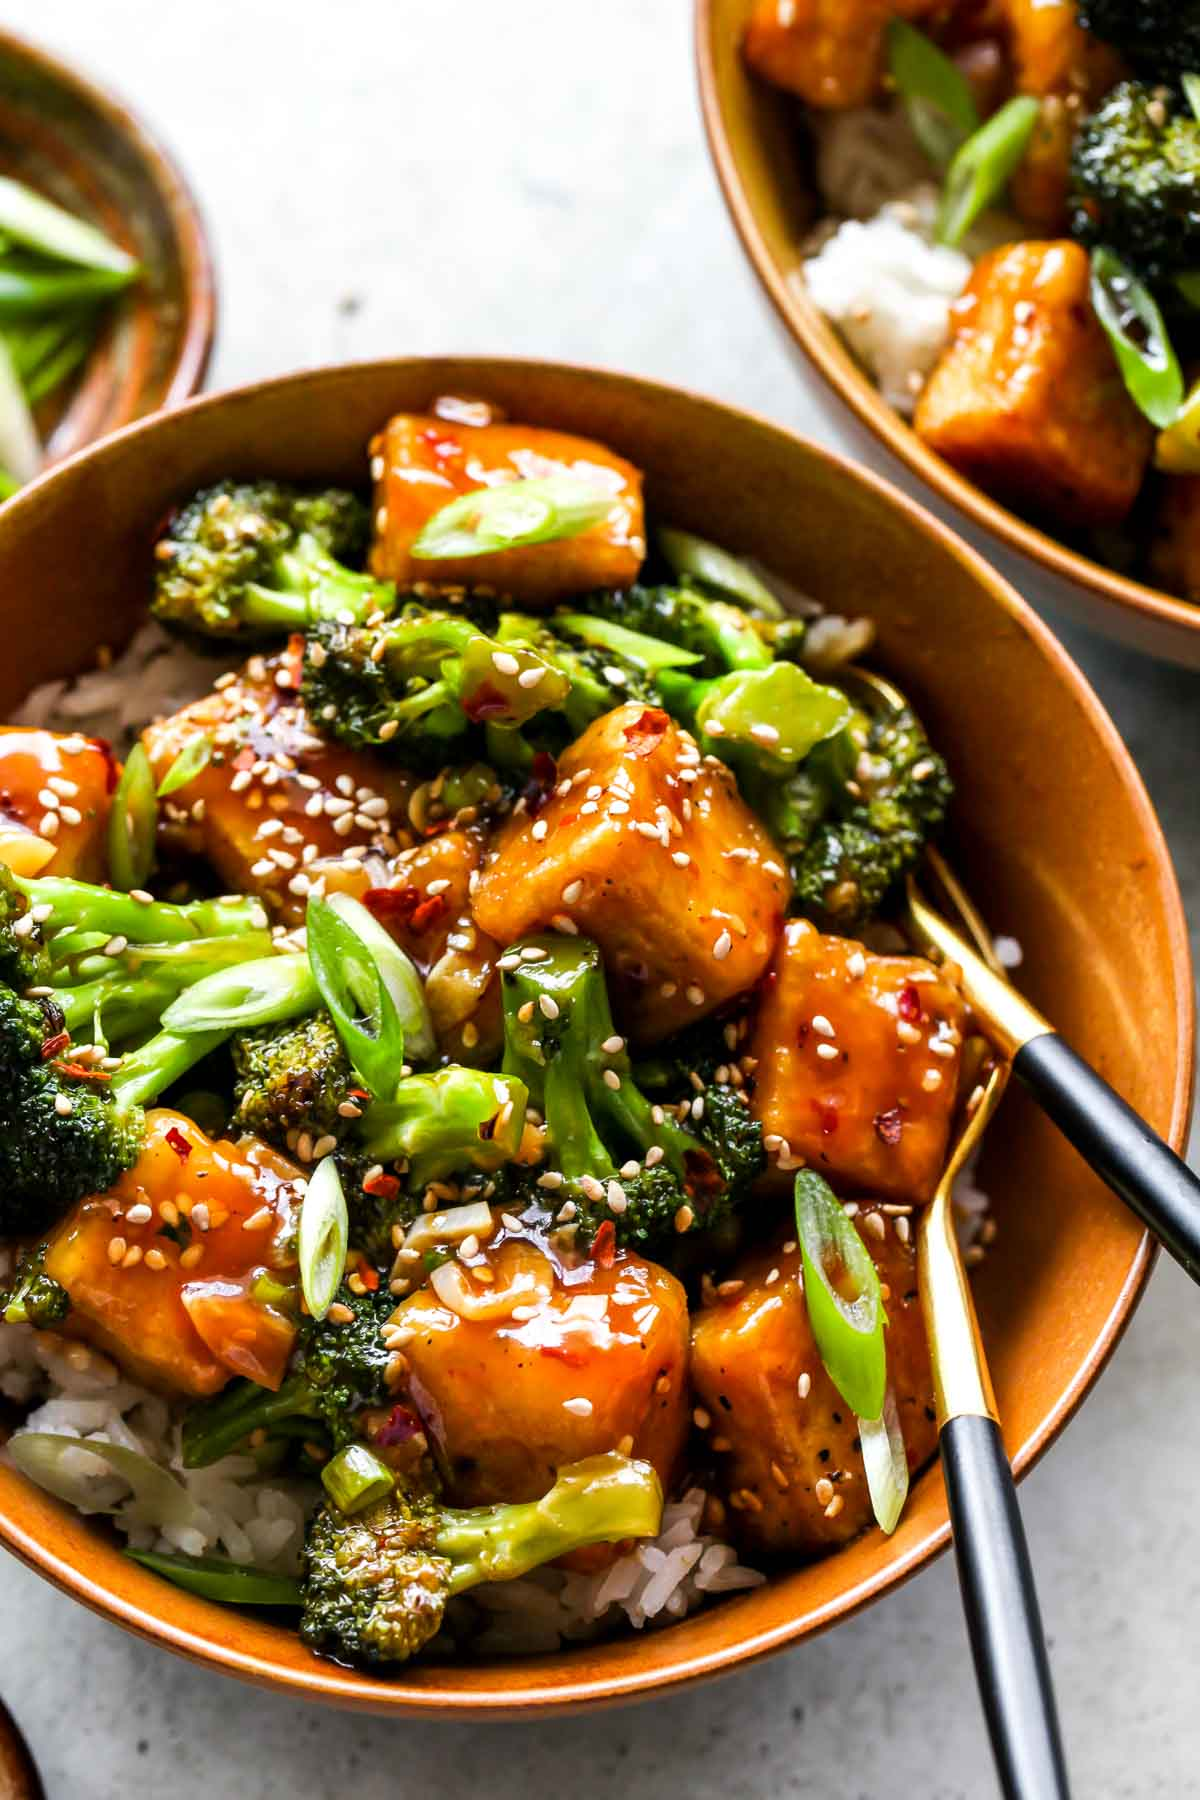 General Tso's Tofu and Broccoli served over rice in a gold bowl